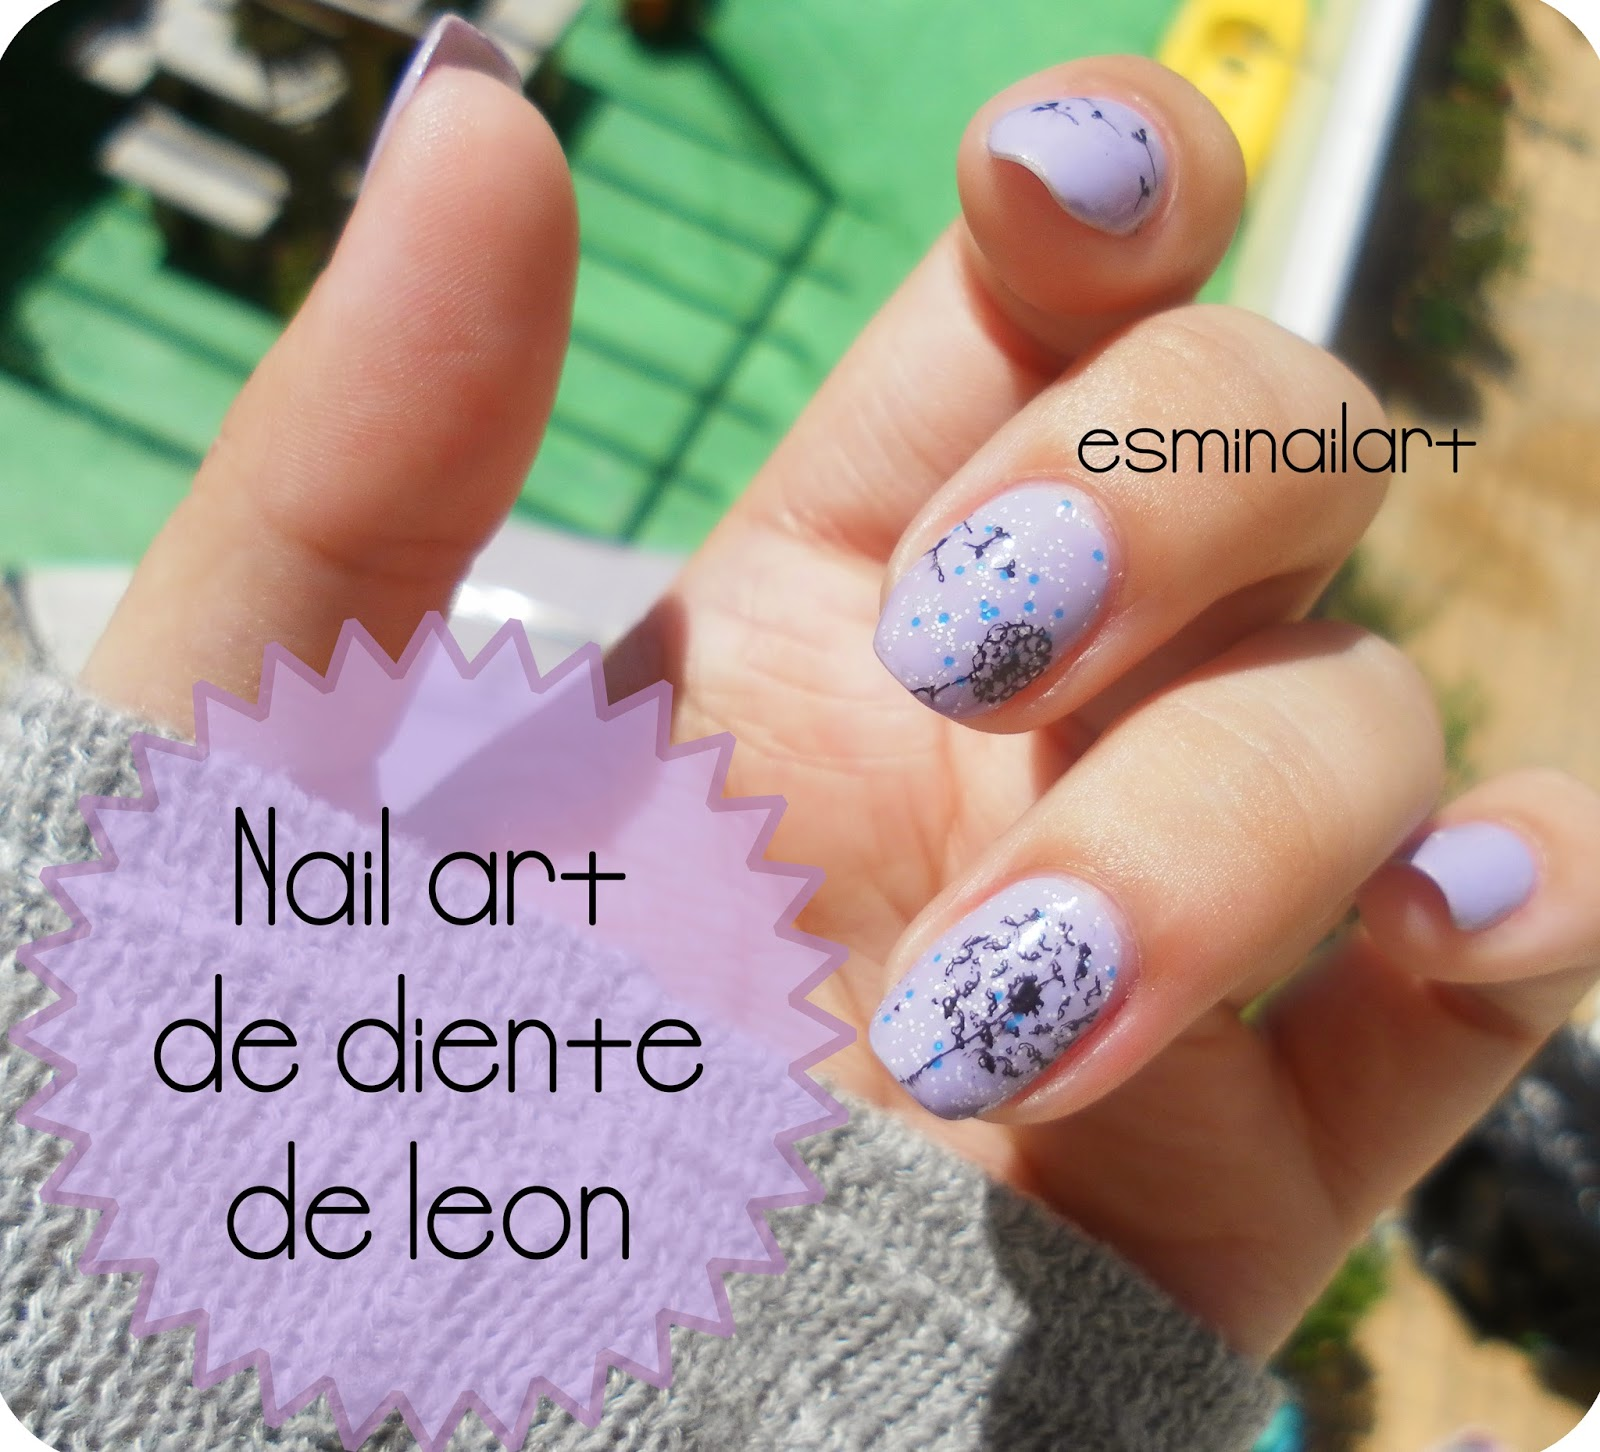 Mi Nail Art Diente De León Moyou London